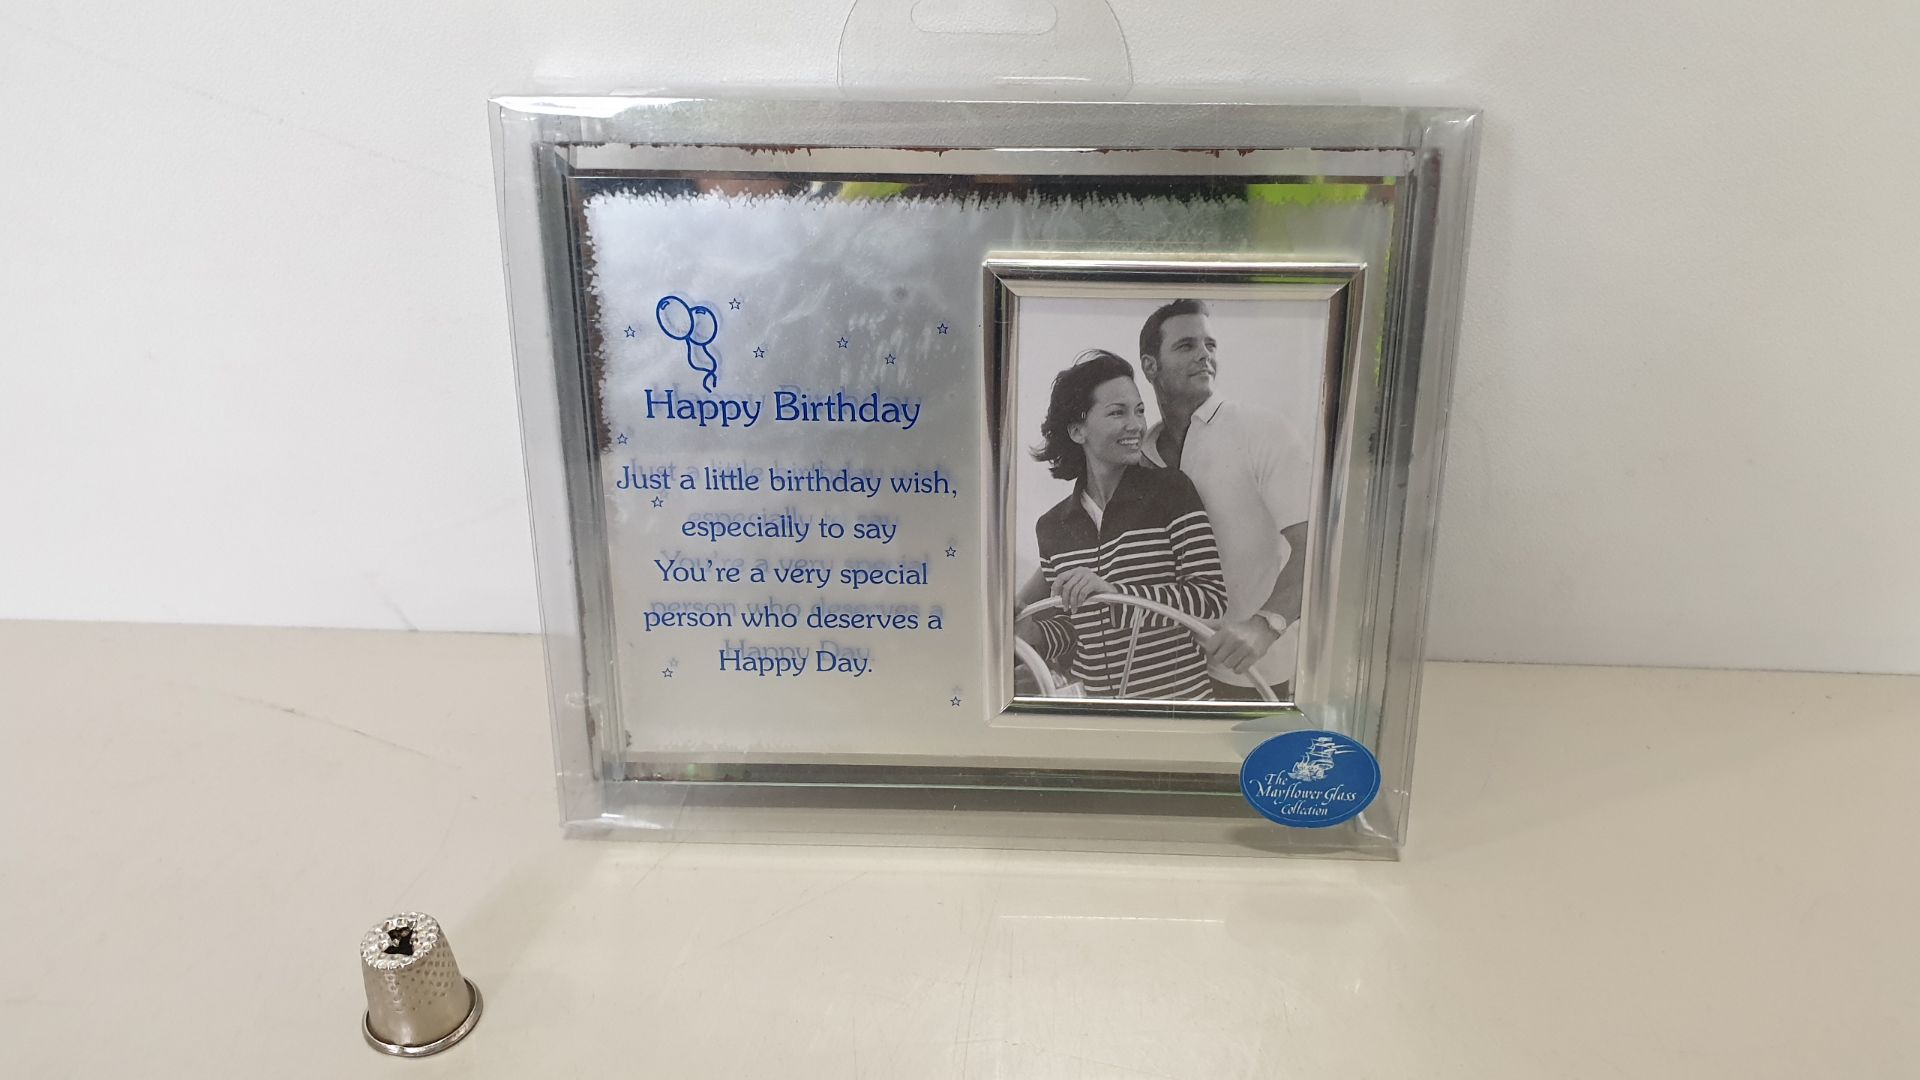 Lot 642 - 144 X BRAND NEW THE MAYFLOWER GLASS COLLECTION HAPPY BIRTHDAY MESSAGE FRAME - IN 3 BOXES